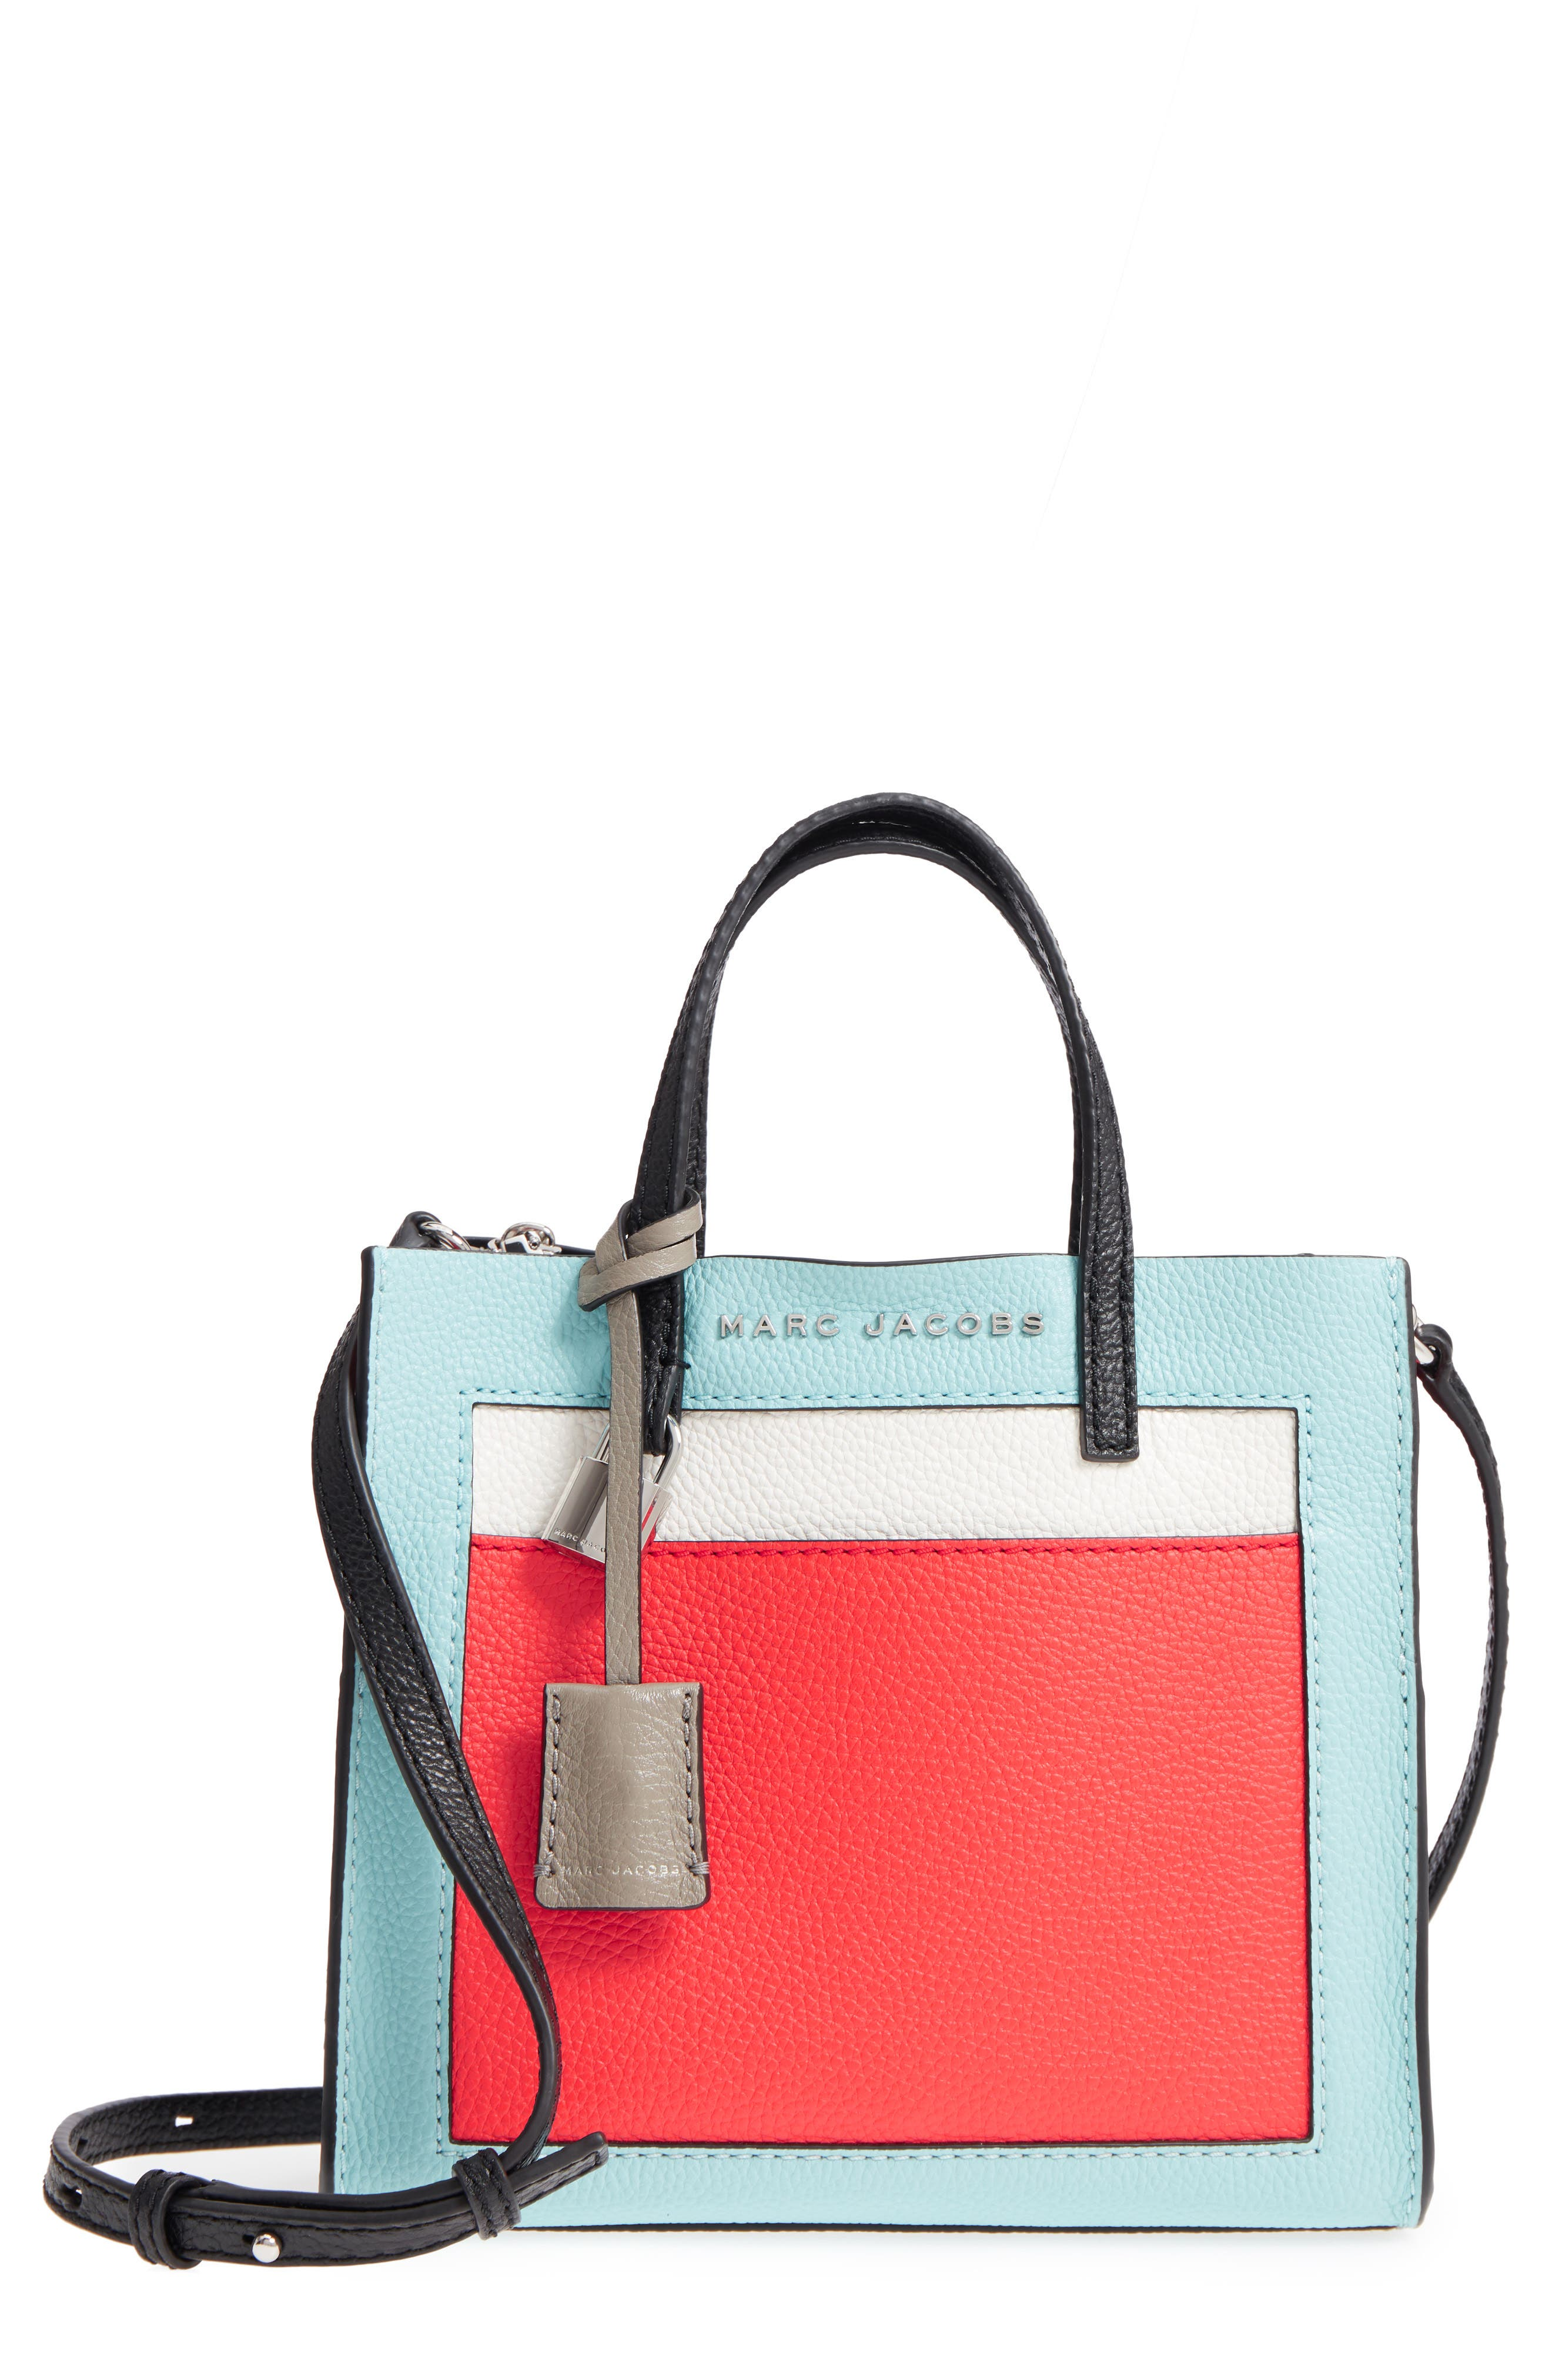 MARC JACOBS Mini Grid Leather Tote